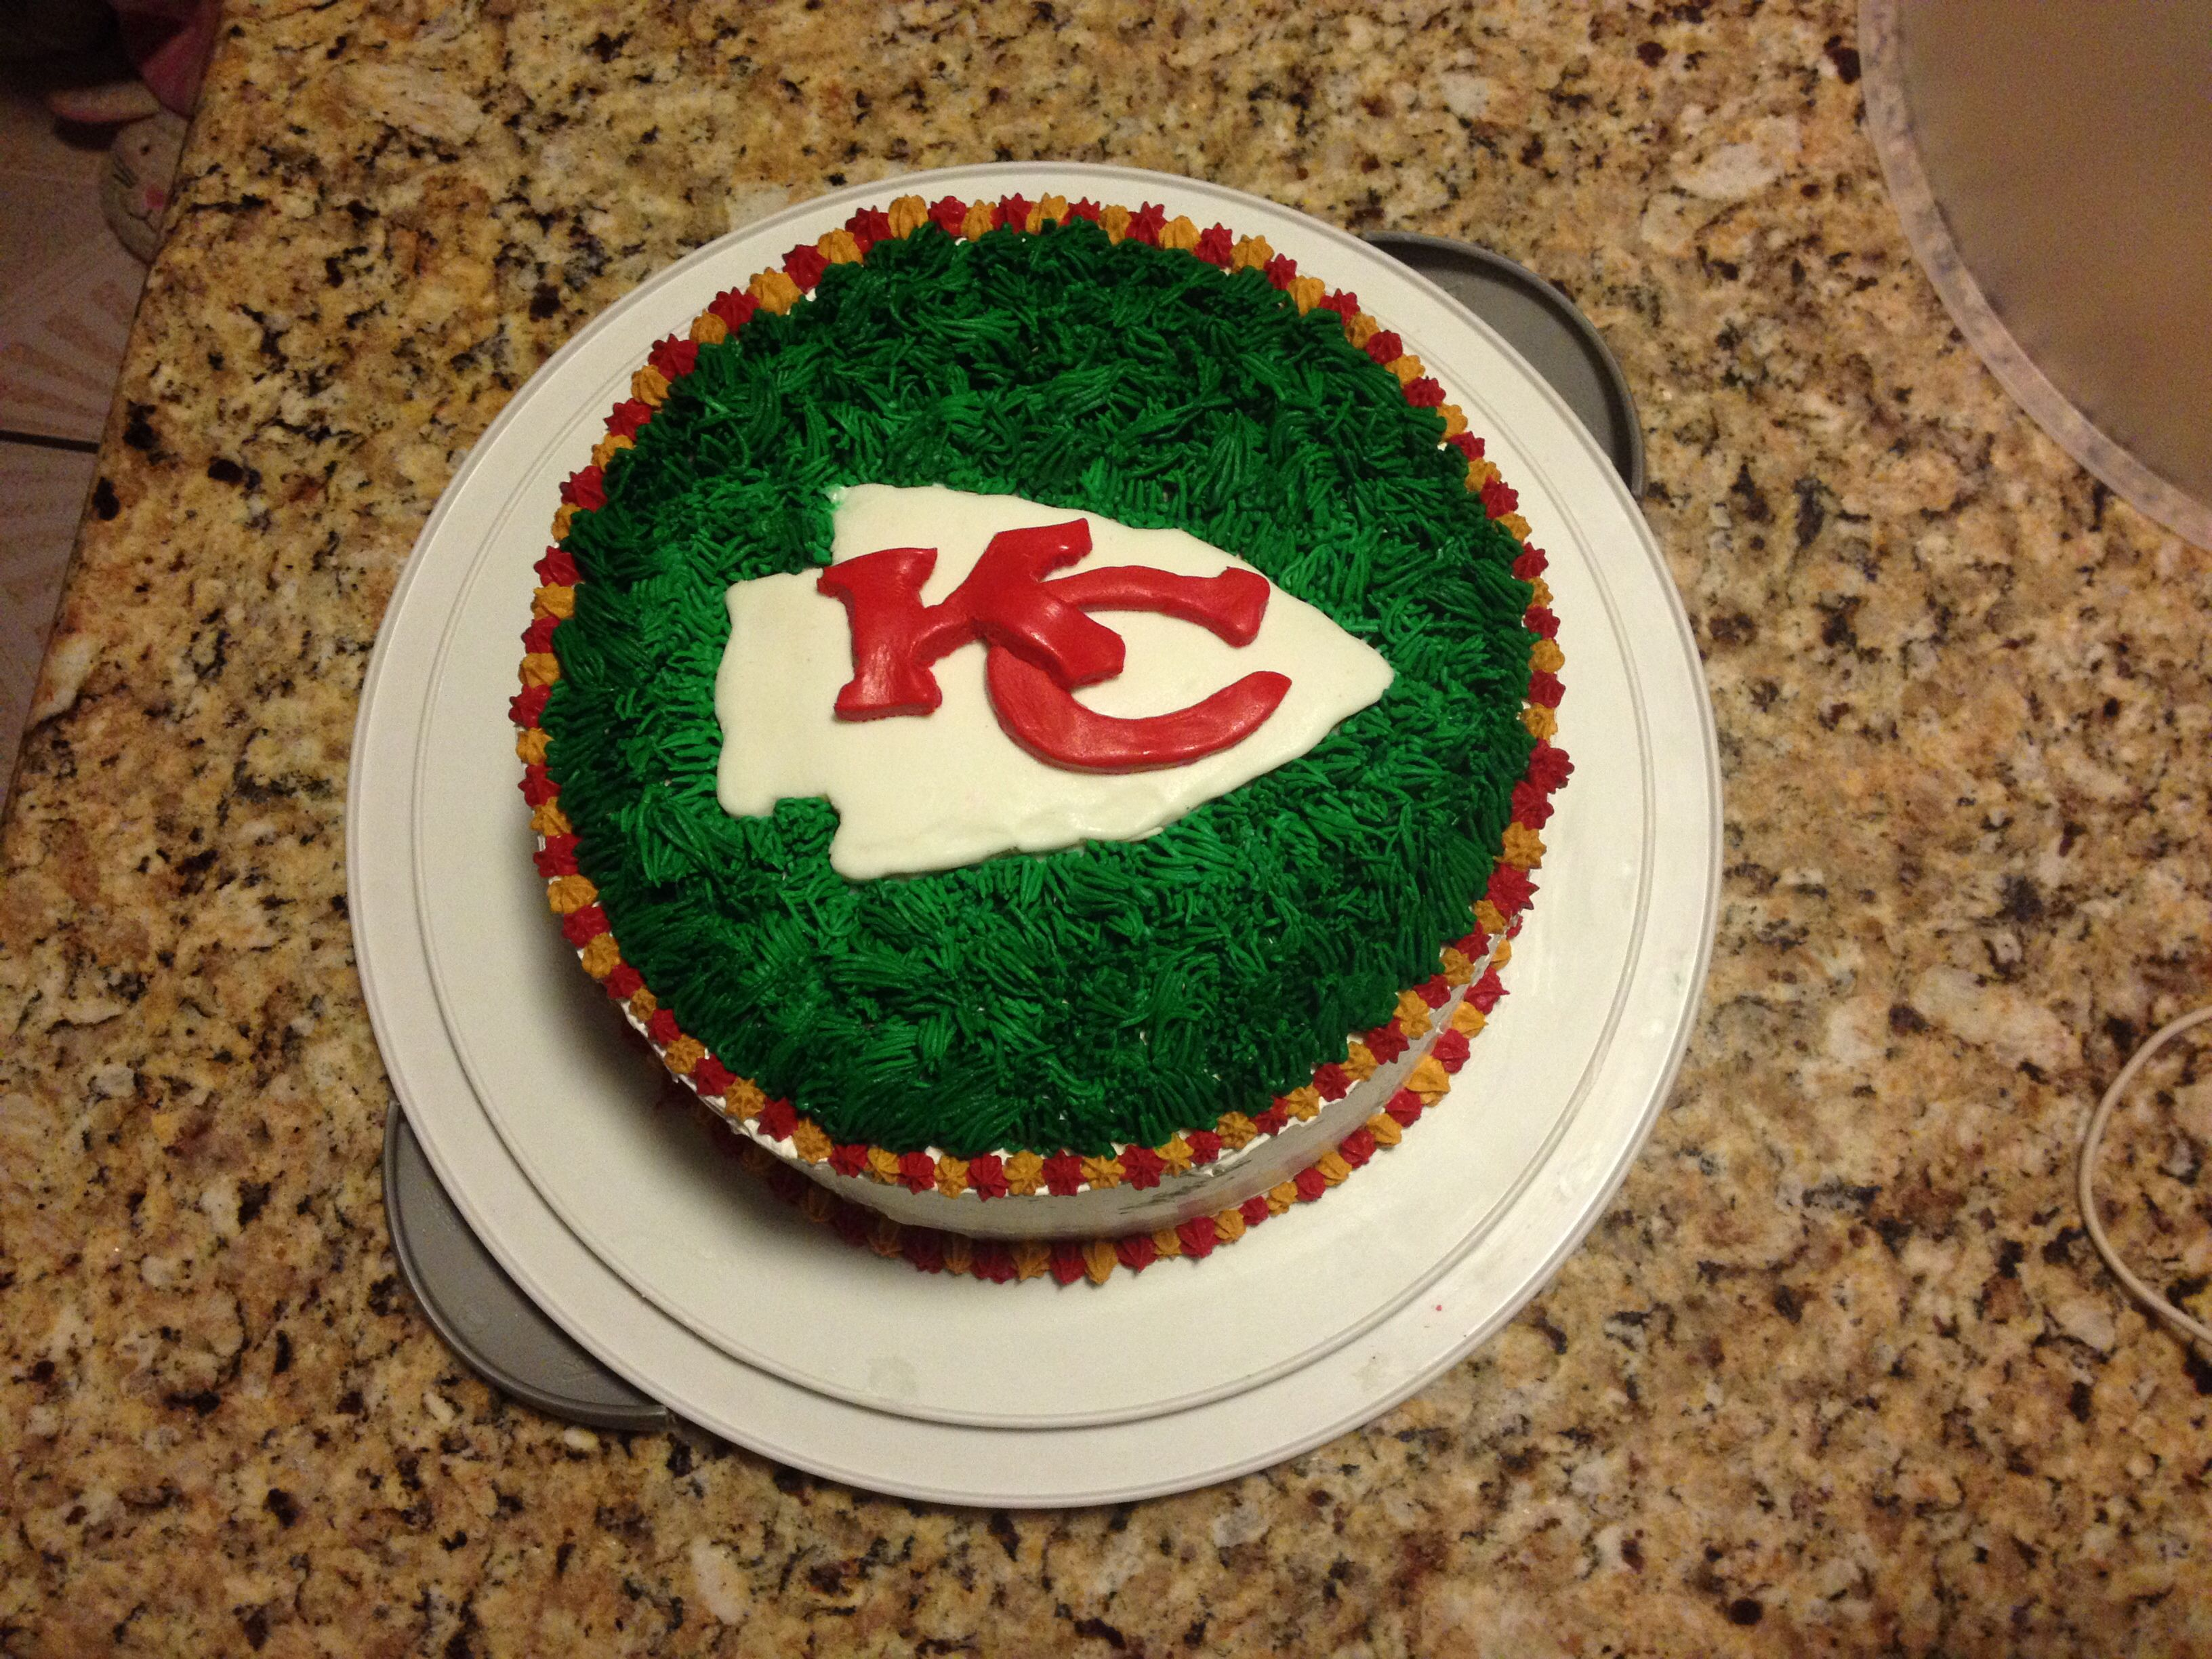 Kc Chiefs Cake With Images Superbowl Party Cake Kc Chiefs